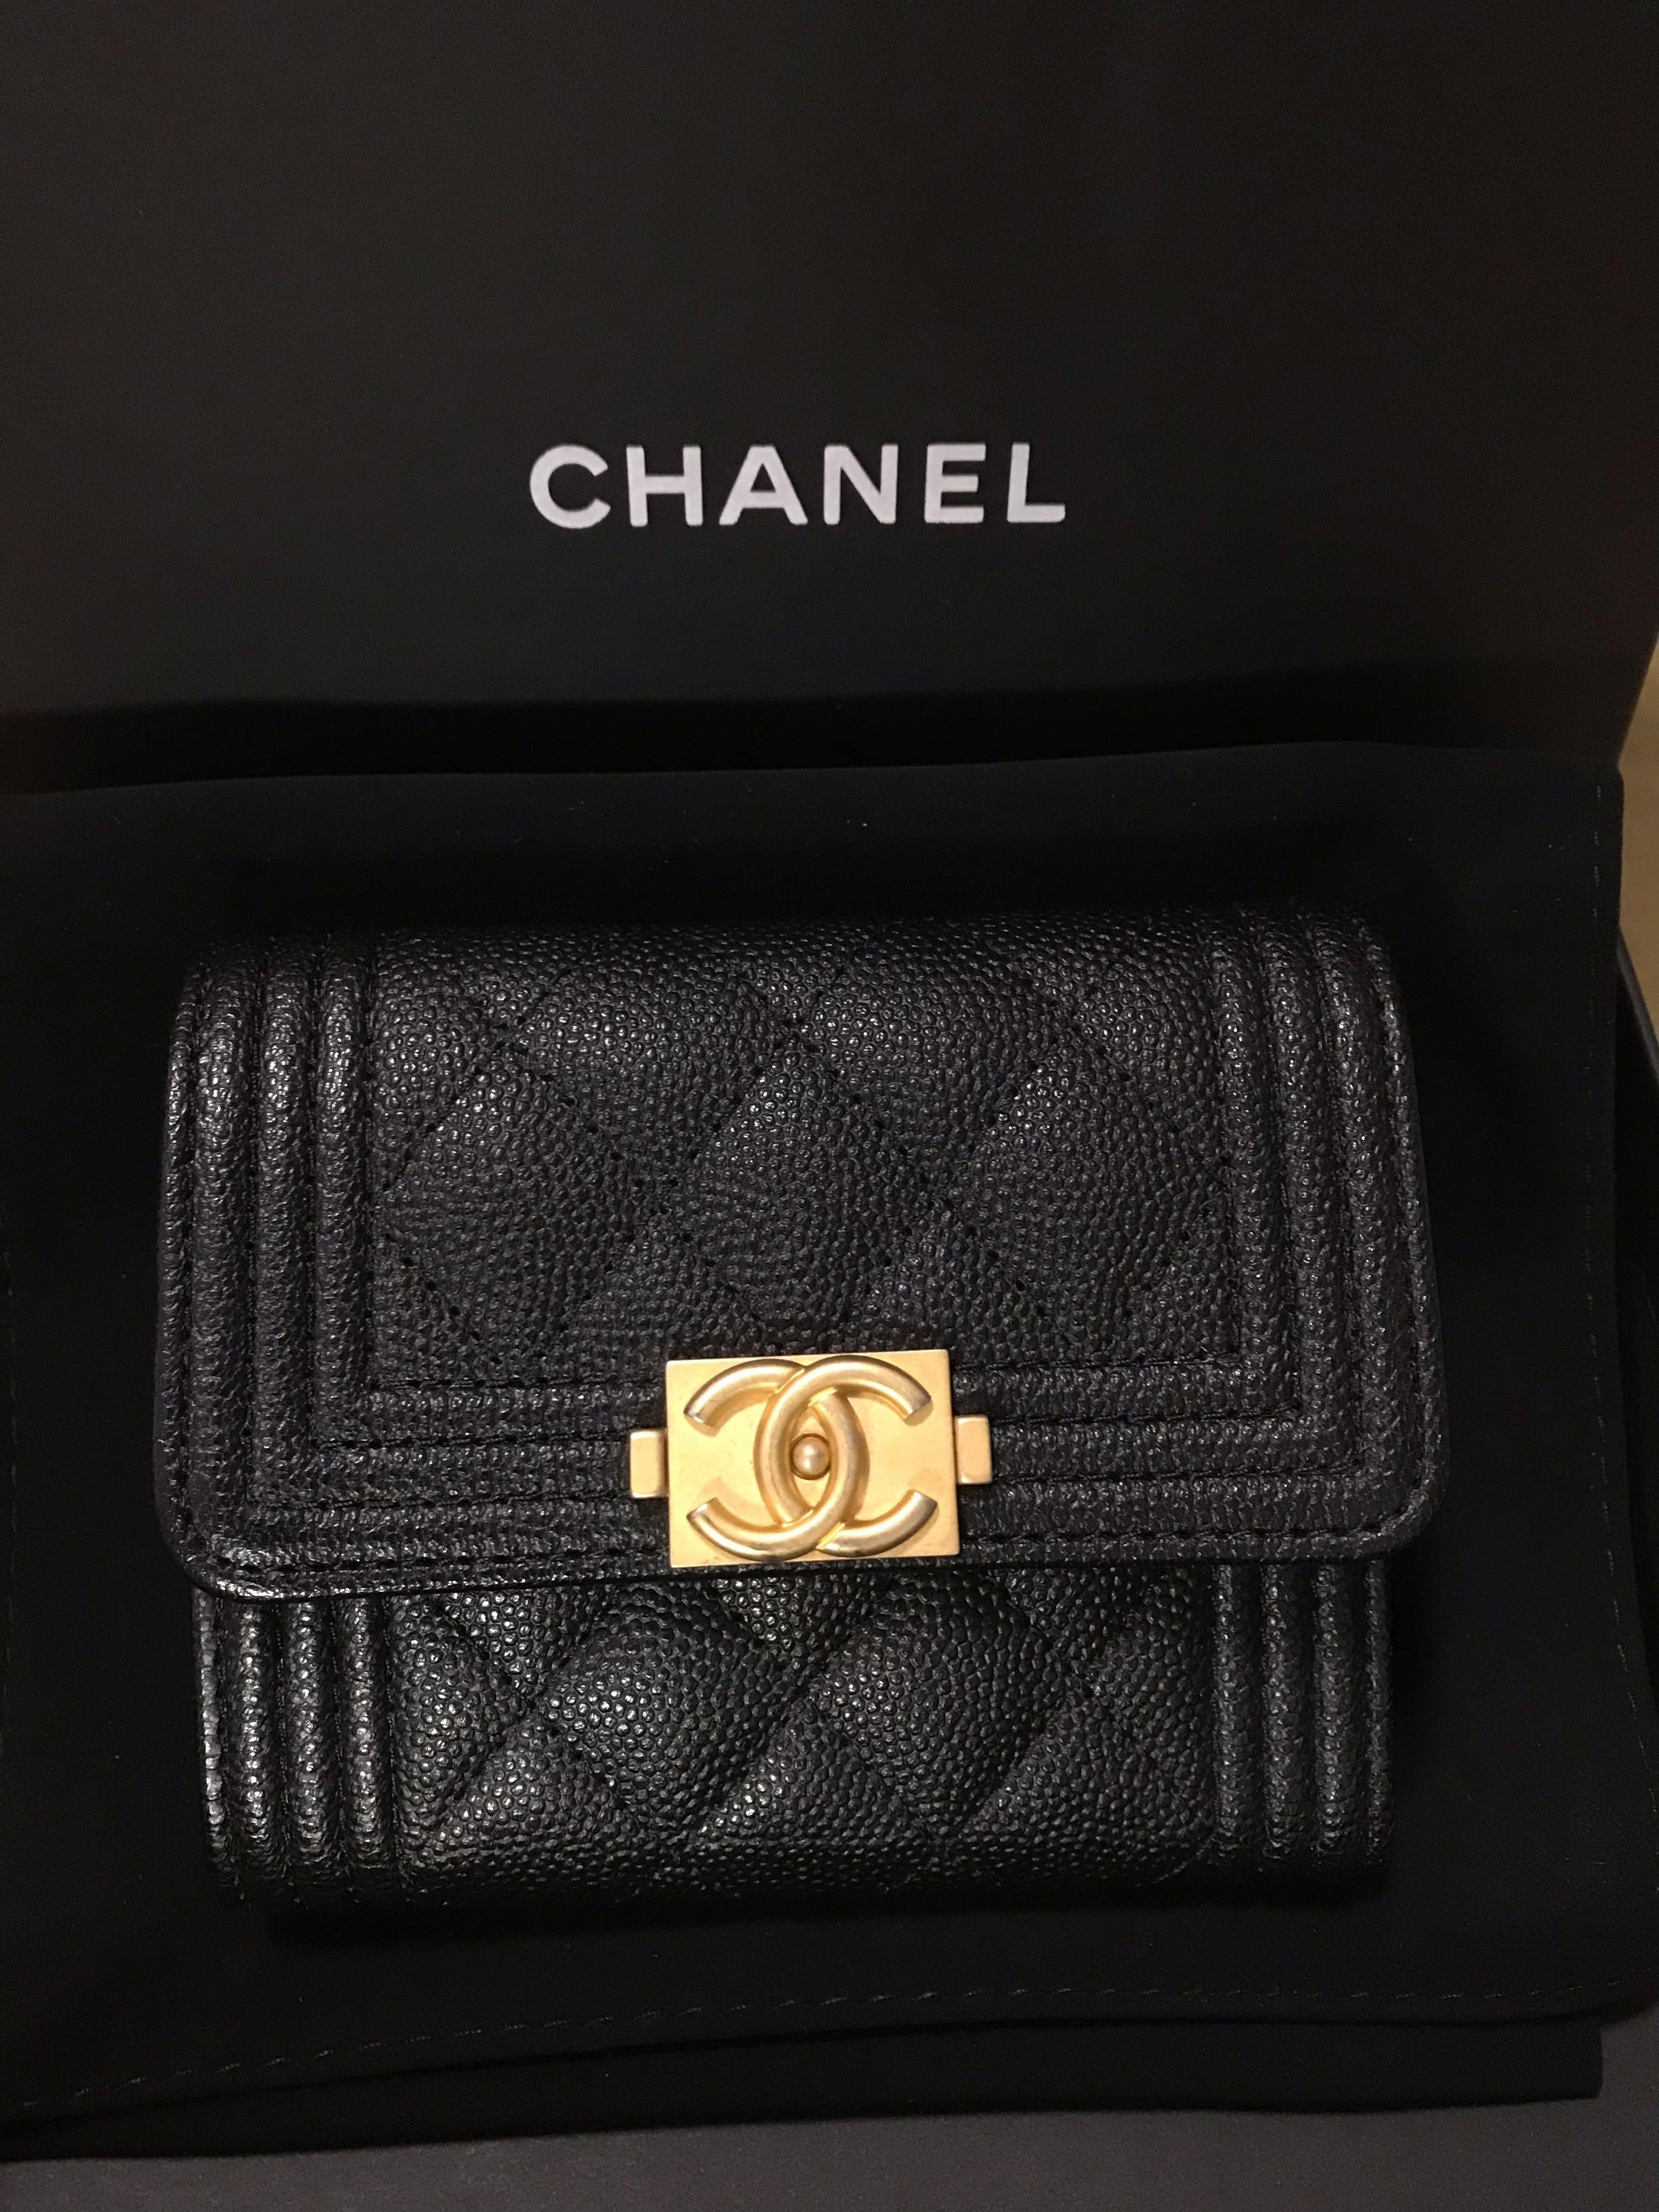 64884359cf Boy Chanel Small Flap Wallet, Women's Fashion, Bags & Wallets ...